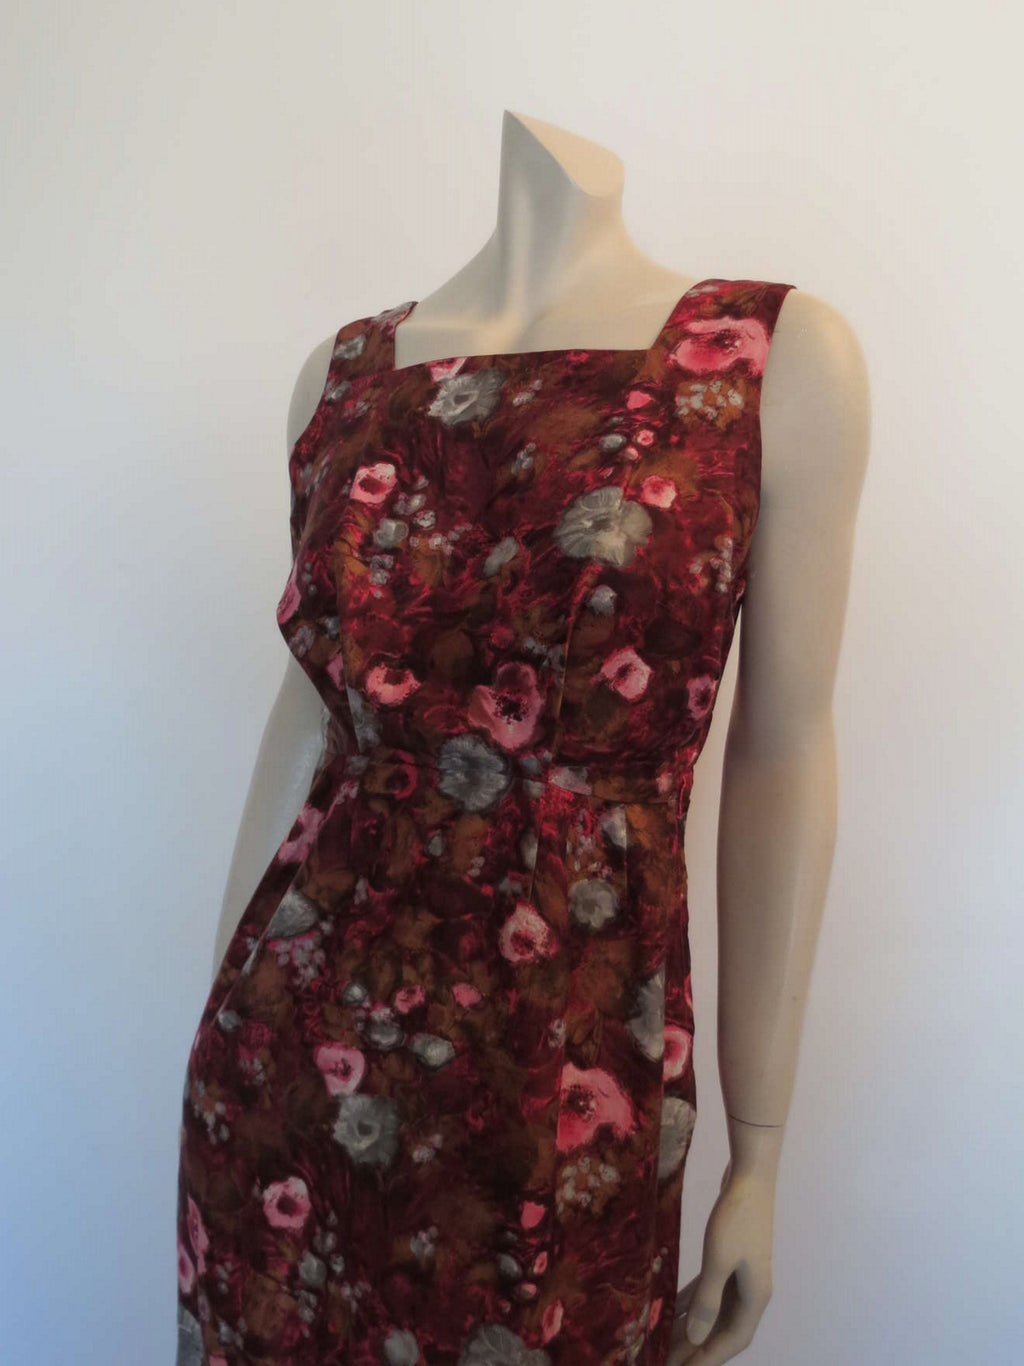 1960s vintage pink brown floral cotton dress by audrey middleton